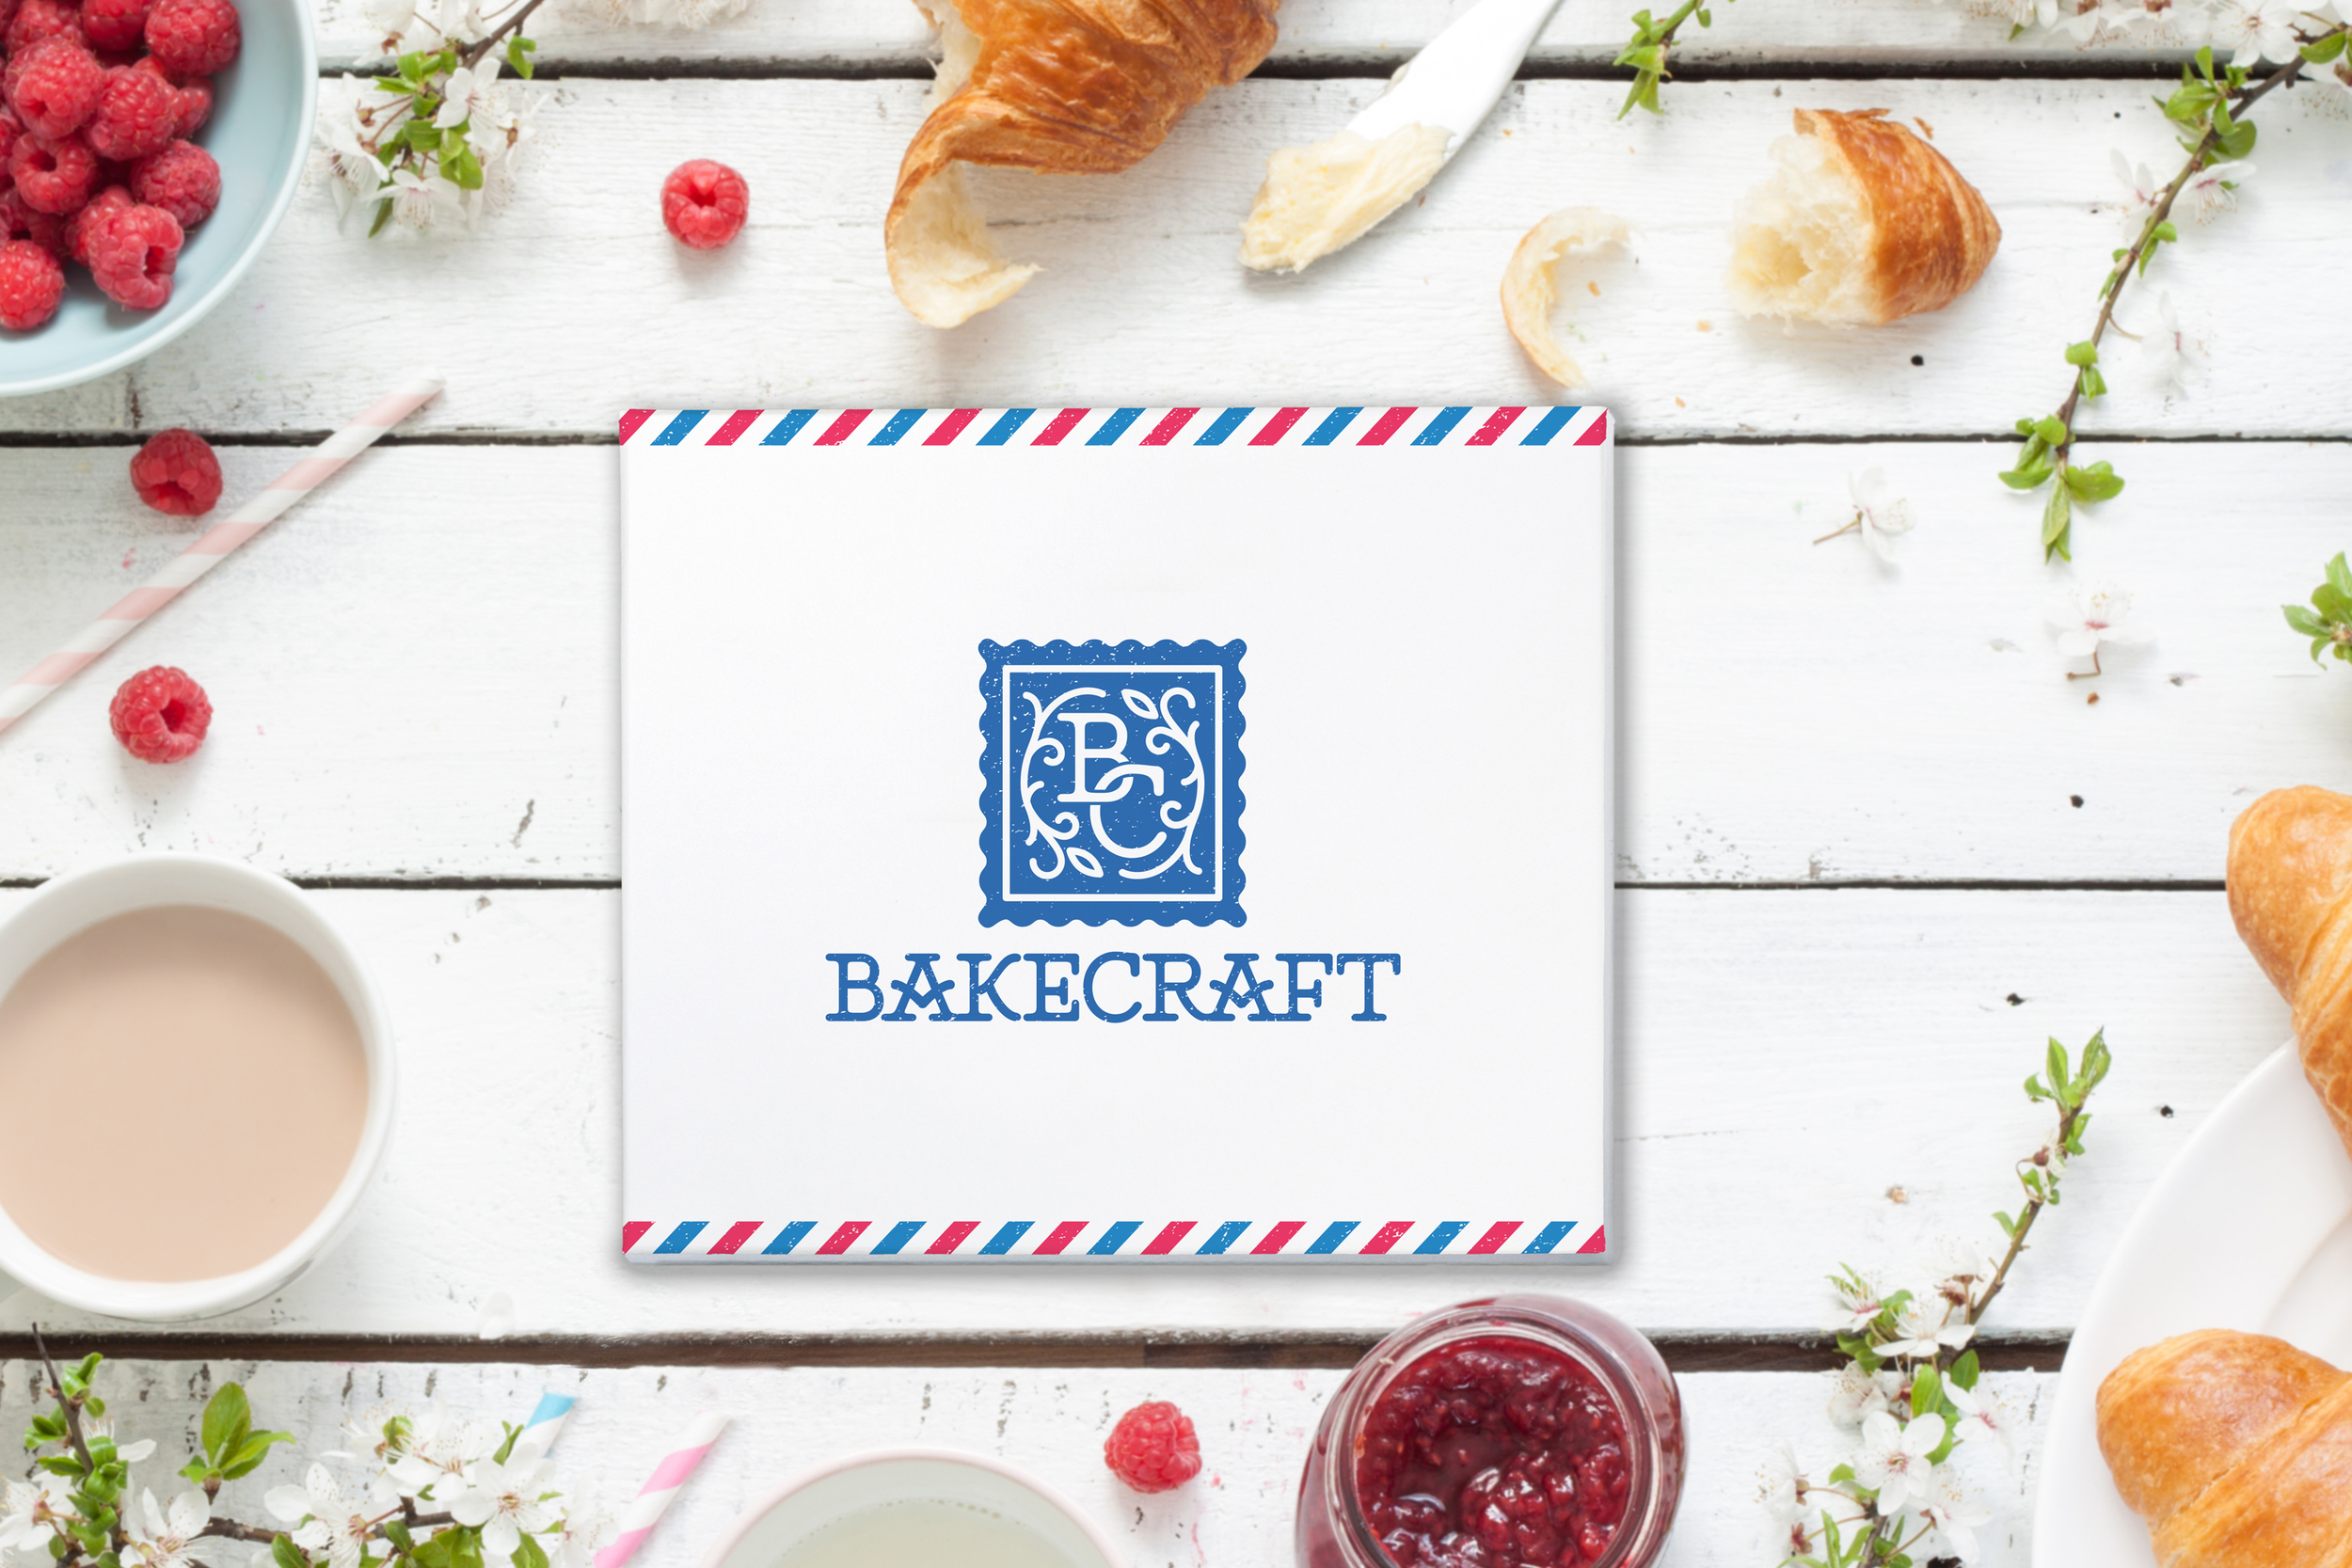 BakeCraft_Box_Mockup.jpg